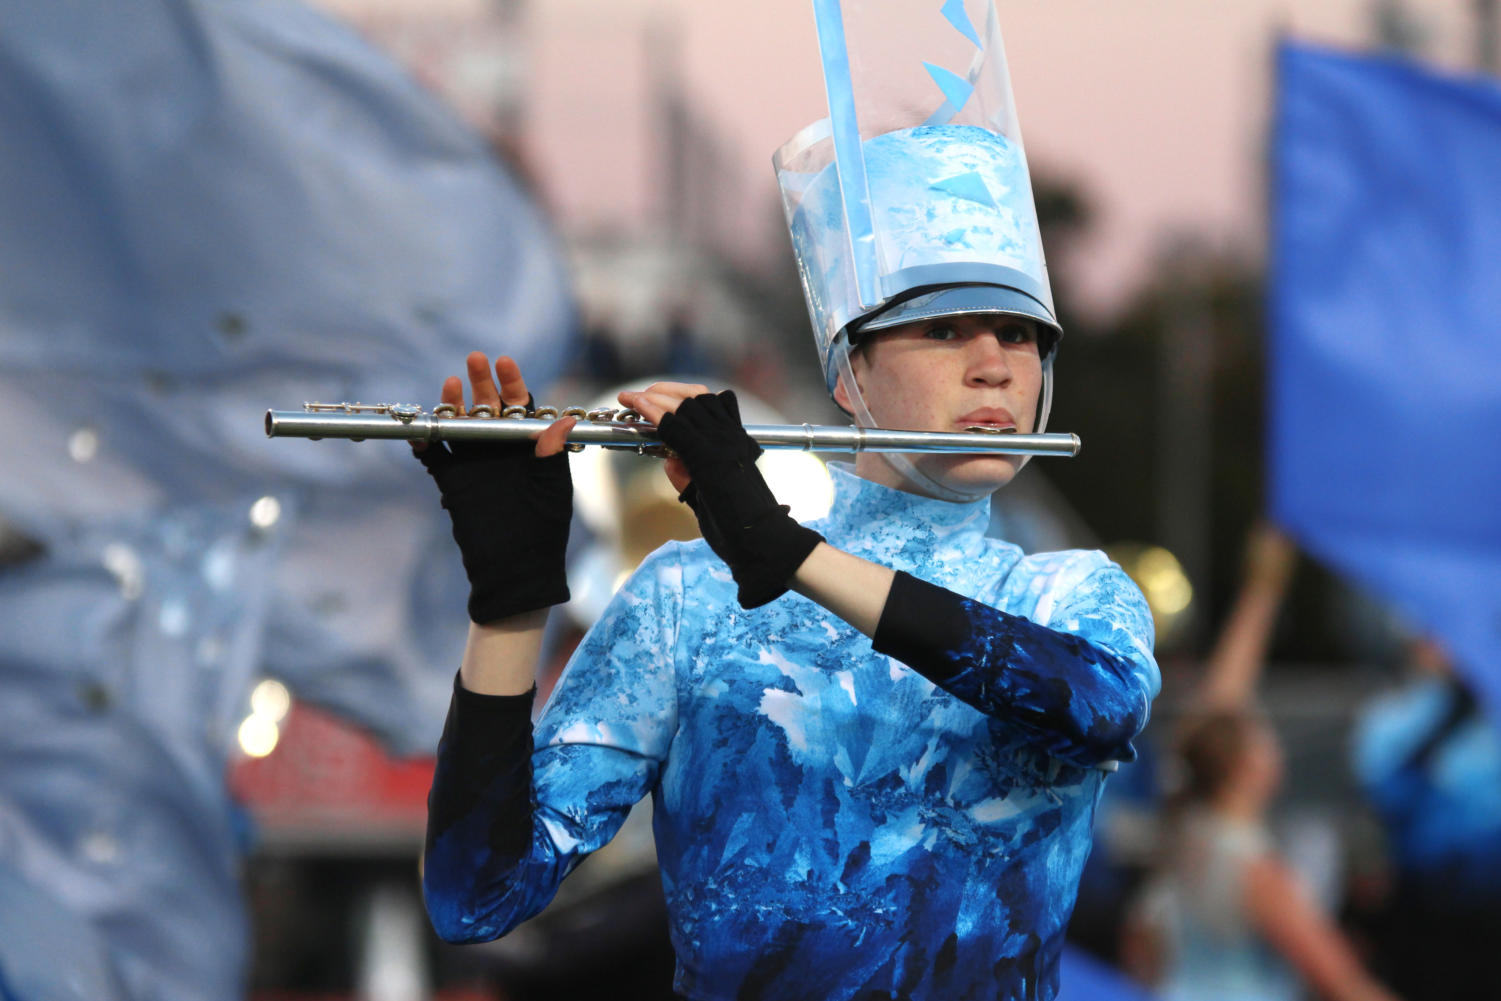 Senior+Mitchell+Massey+plays+the+flute+during+movement+three+in+the+band%27s+halftime+performance%2C+%22Silent+Night.%22